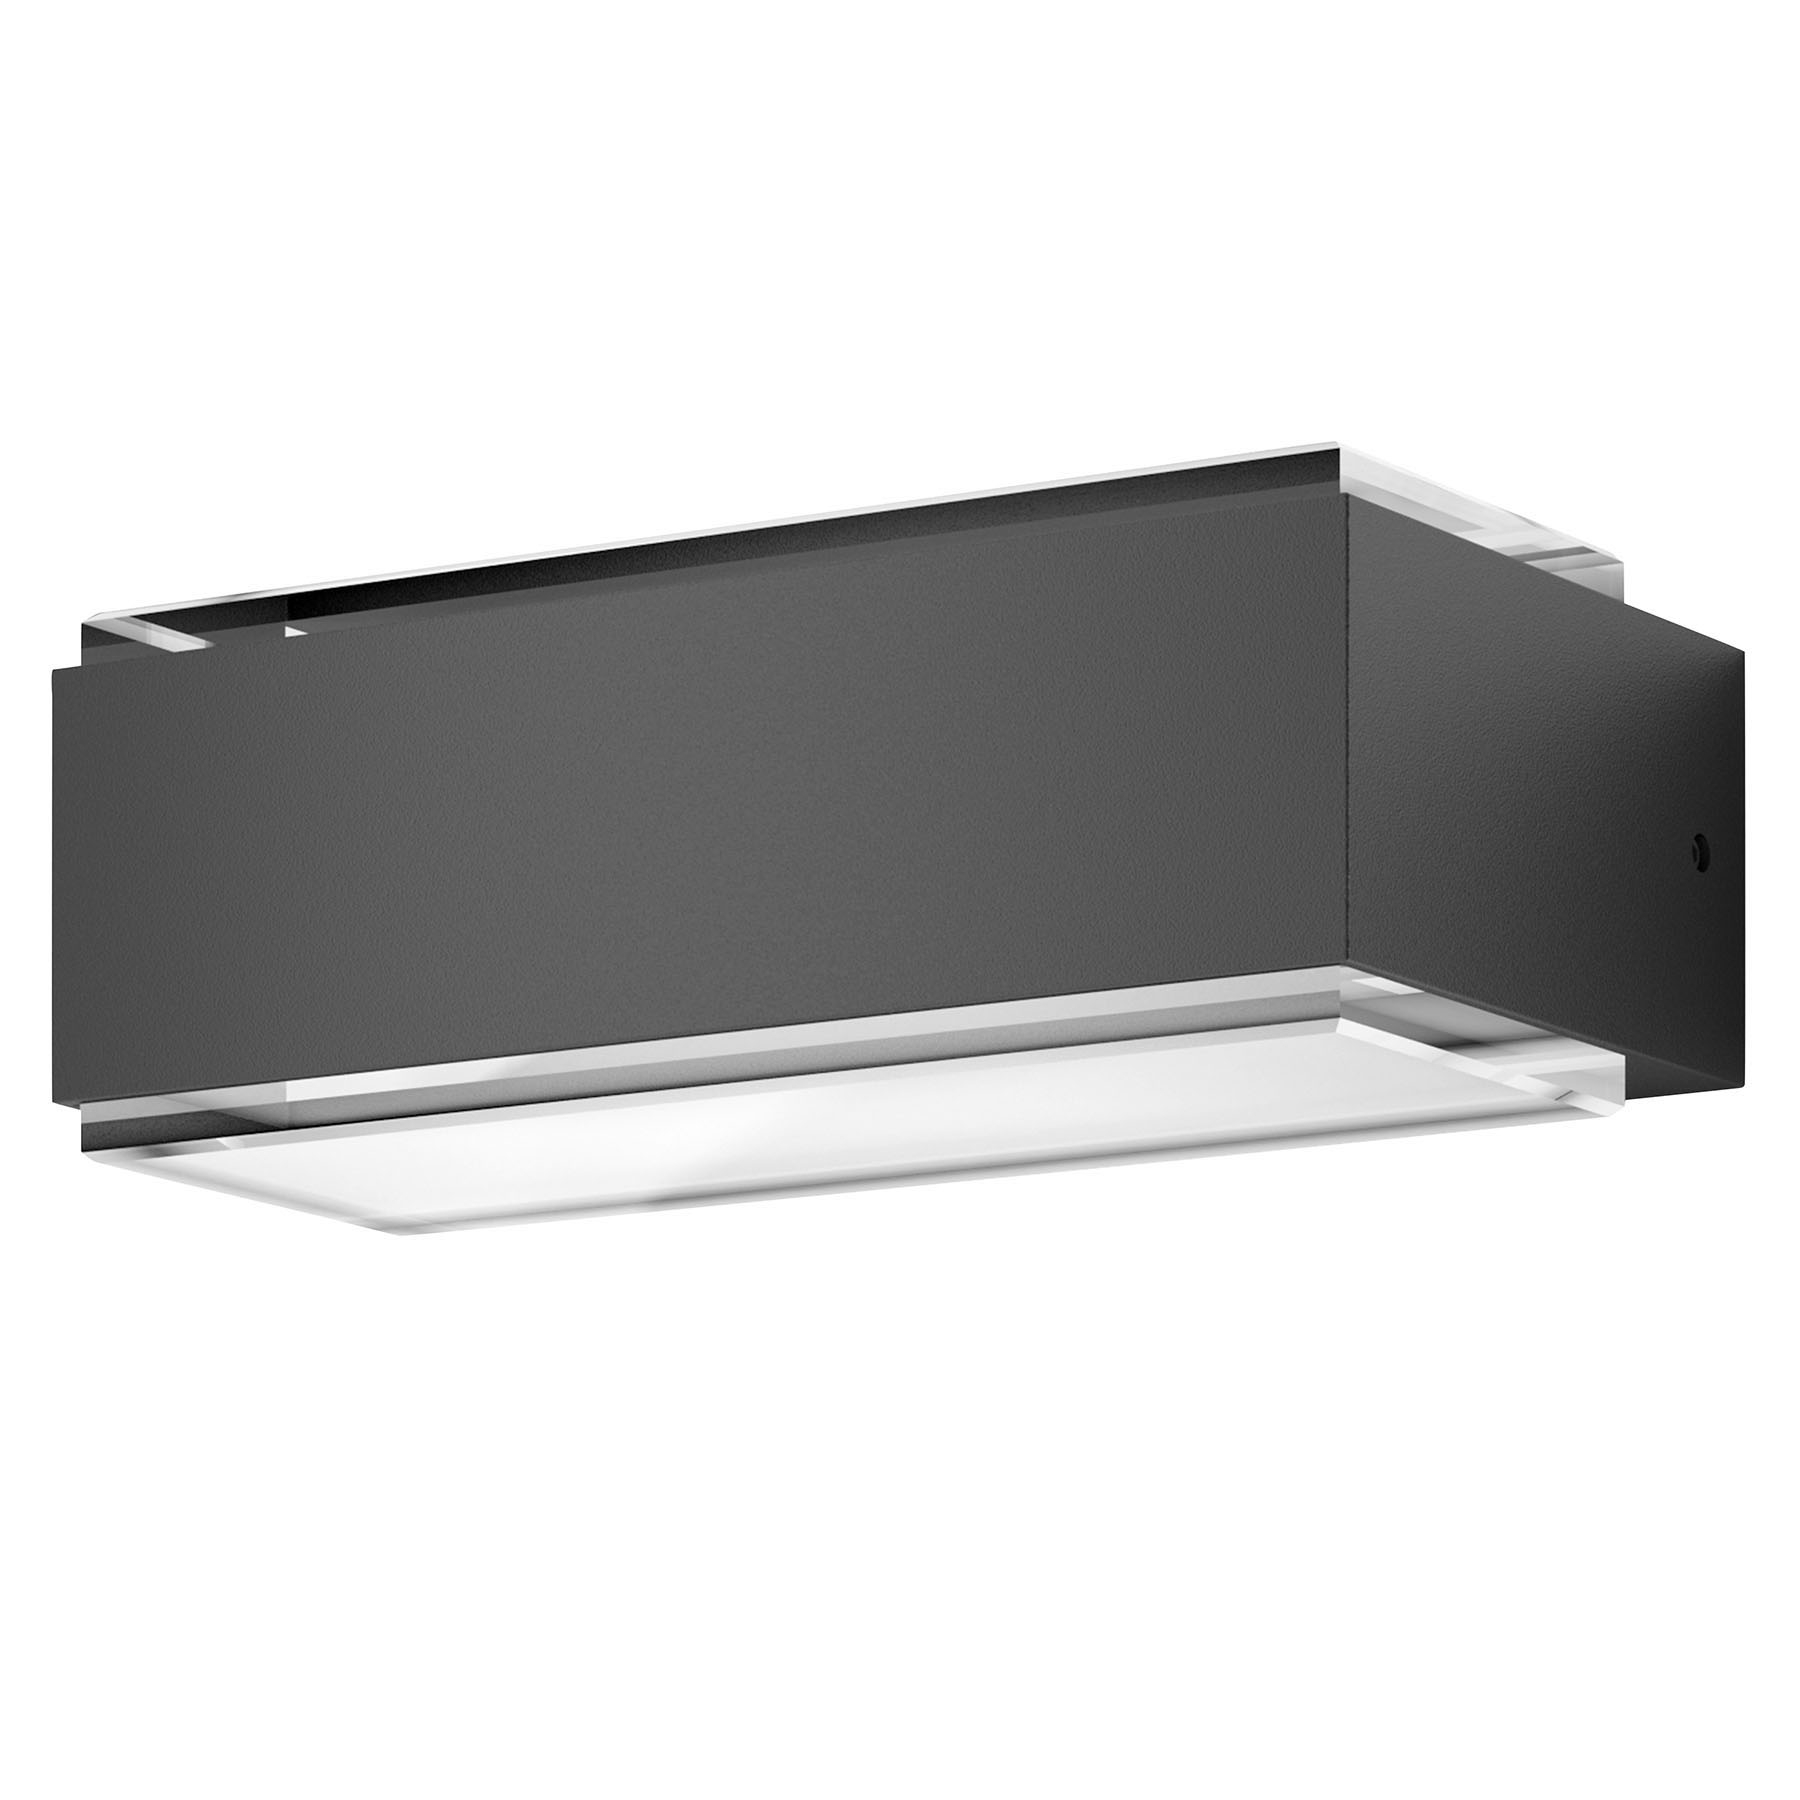 Applique d'extérieur LED CMD 9027, Up Down